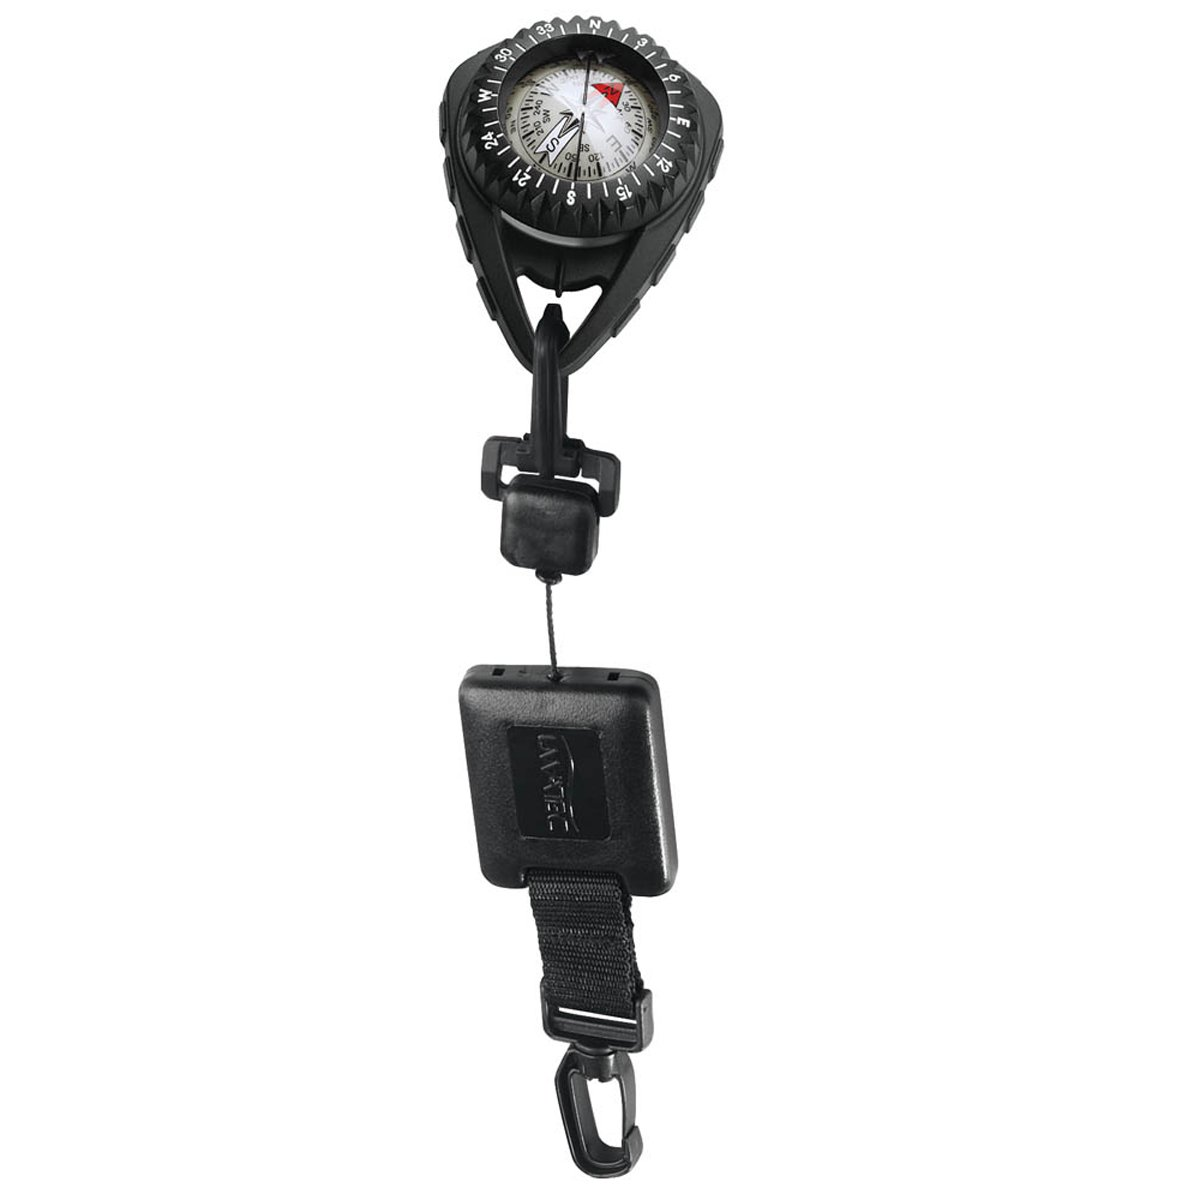 SCUBAPRO FS-1.5 Compass with Retractor